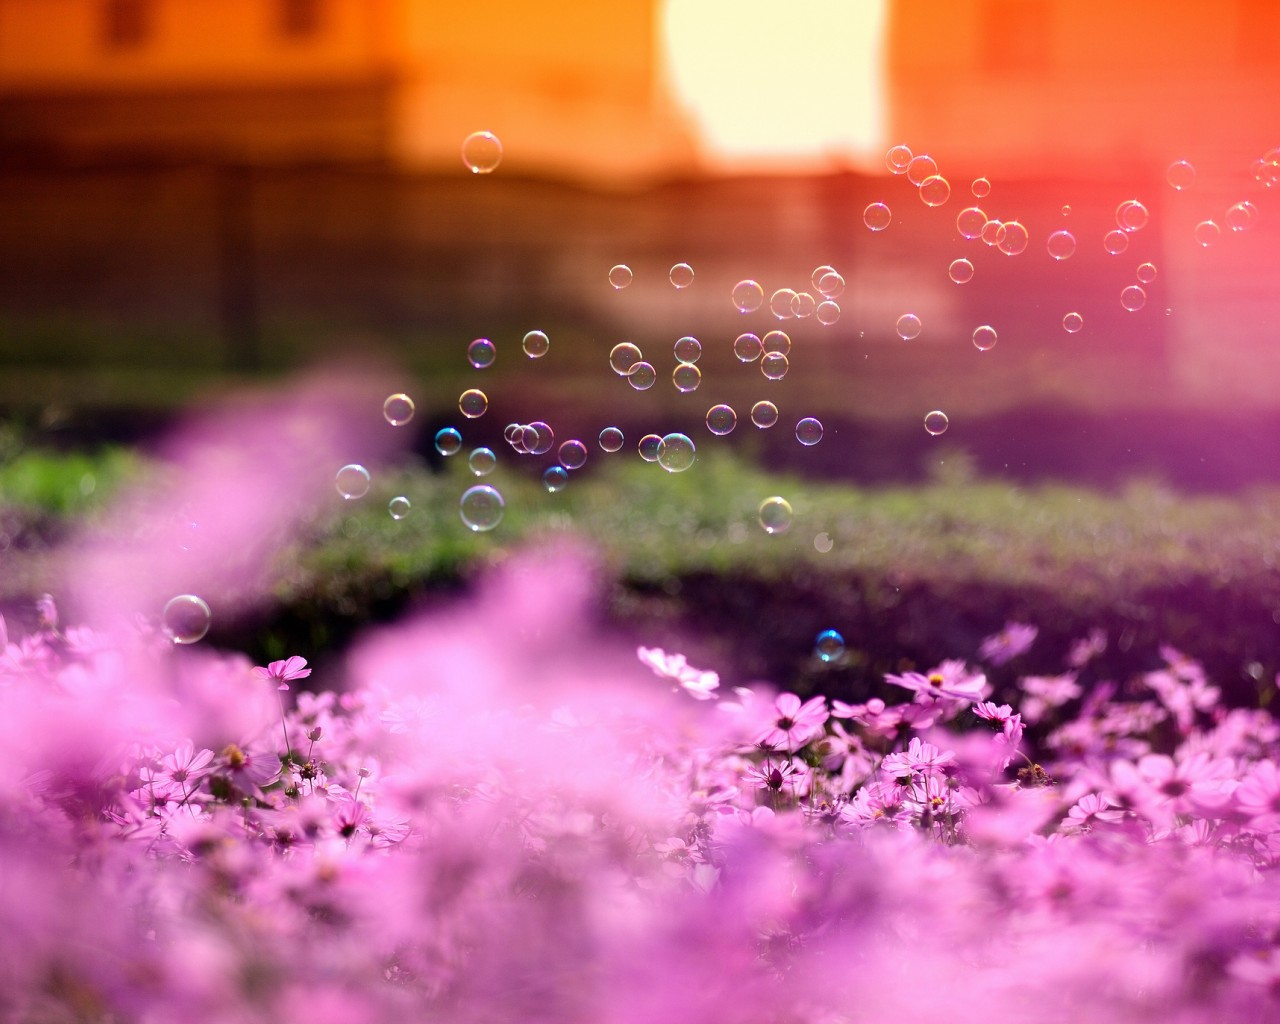 Purple Flowers and Bubbles